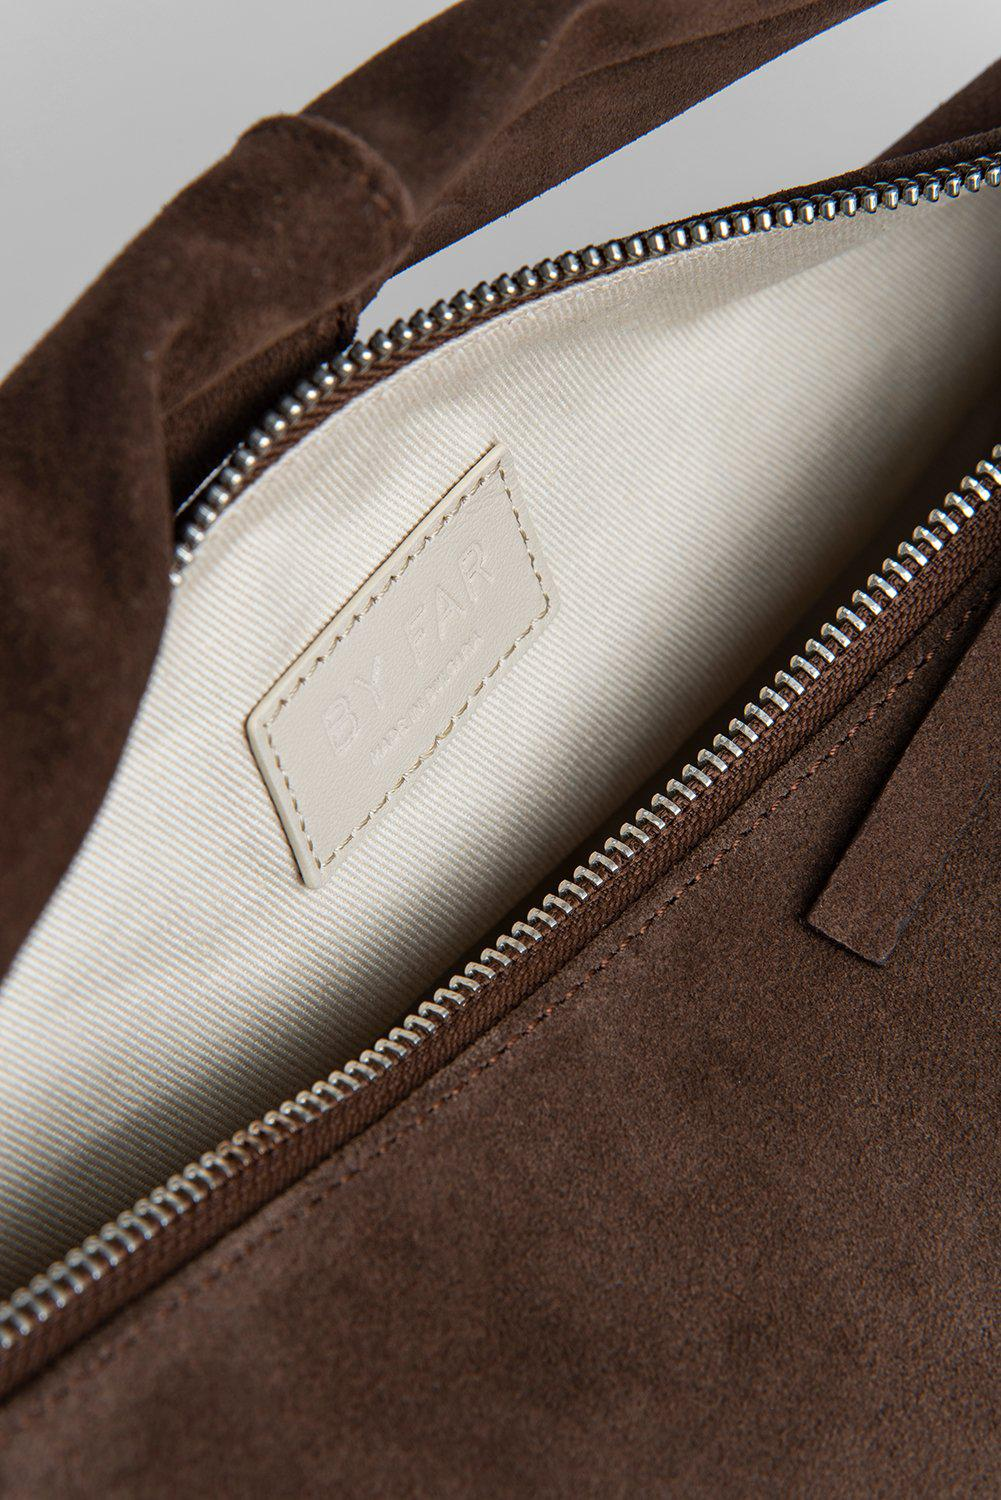 Cush Wood Suede Leather 4